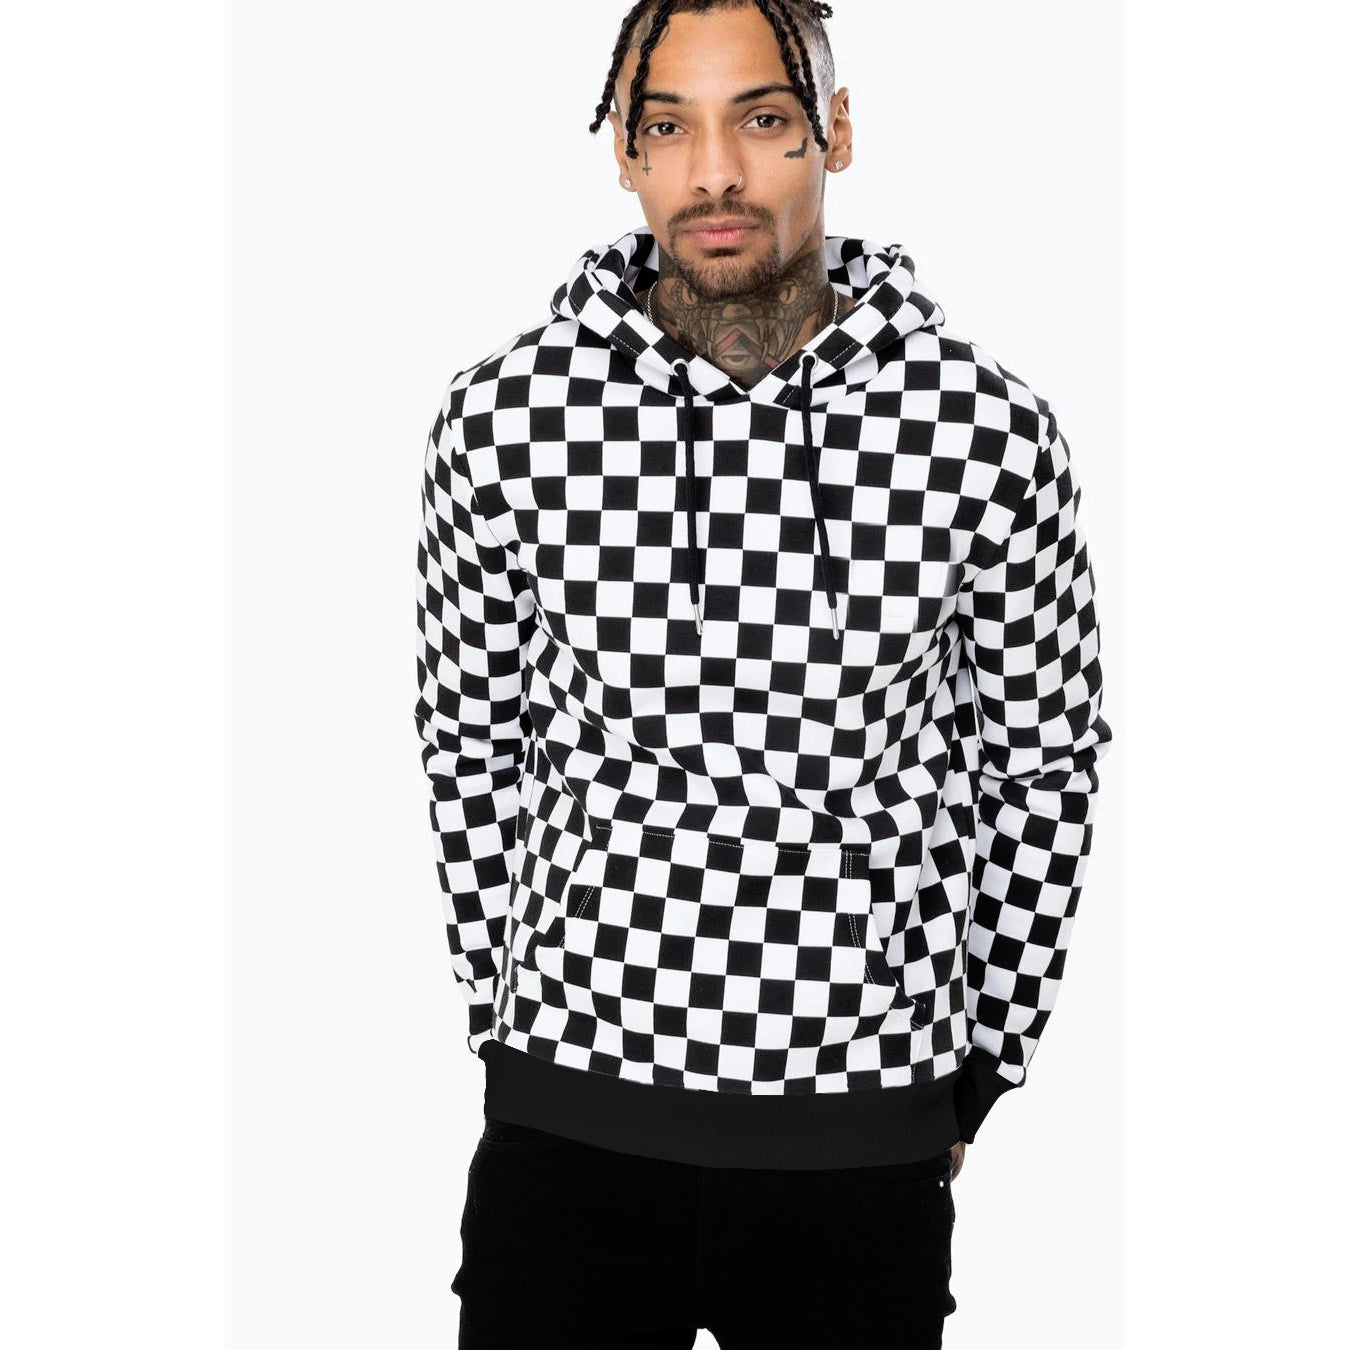 KNIGHT Fleece Pullover Hoodie For Men-White & Black Chek-NA9890